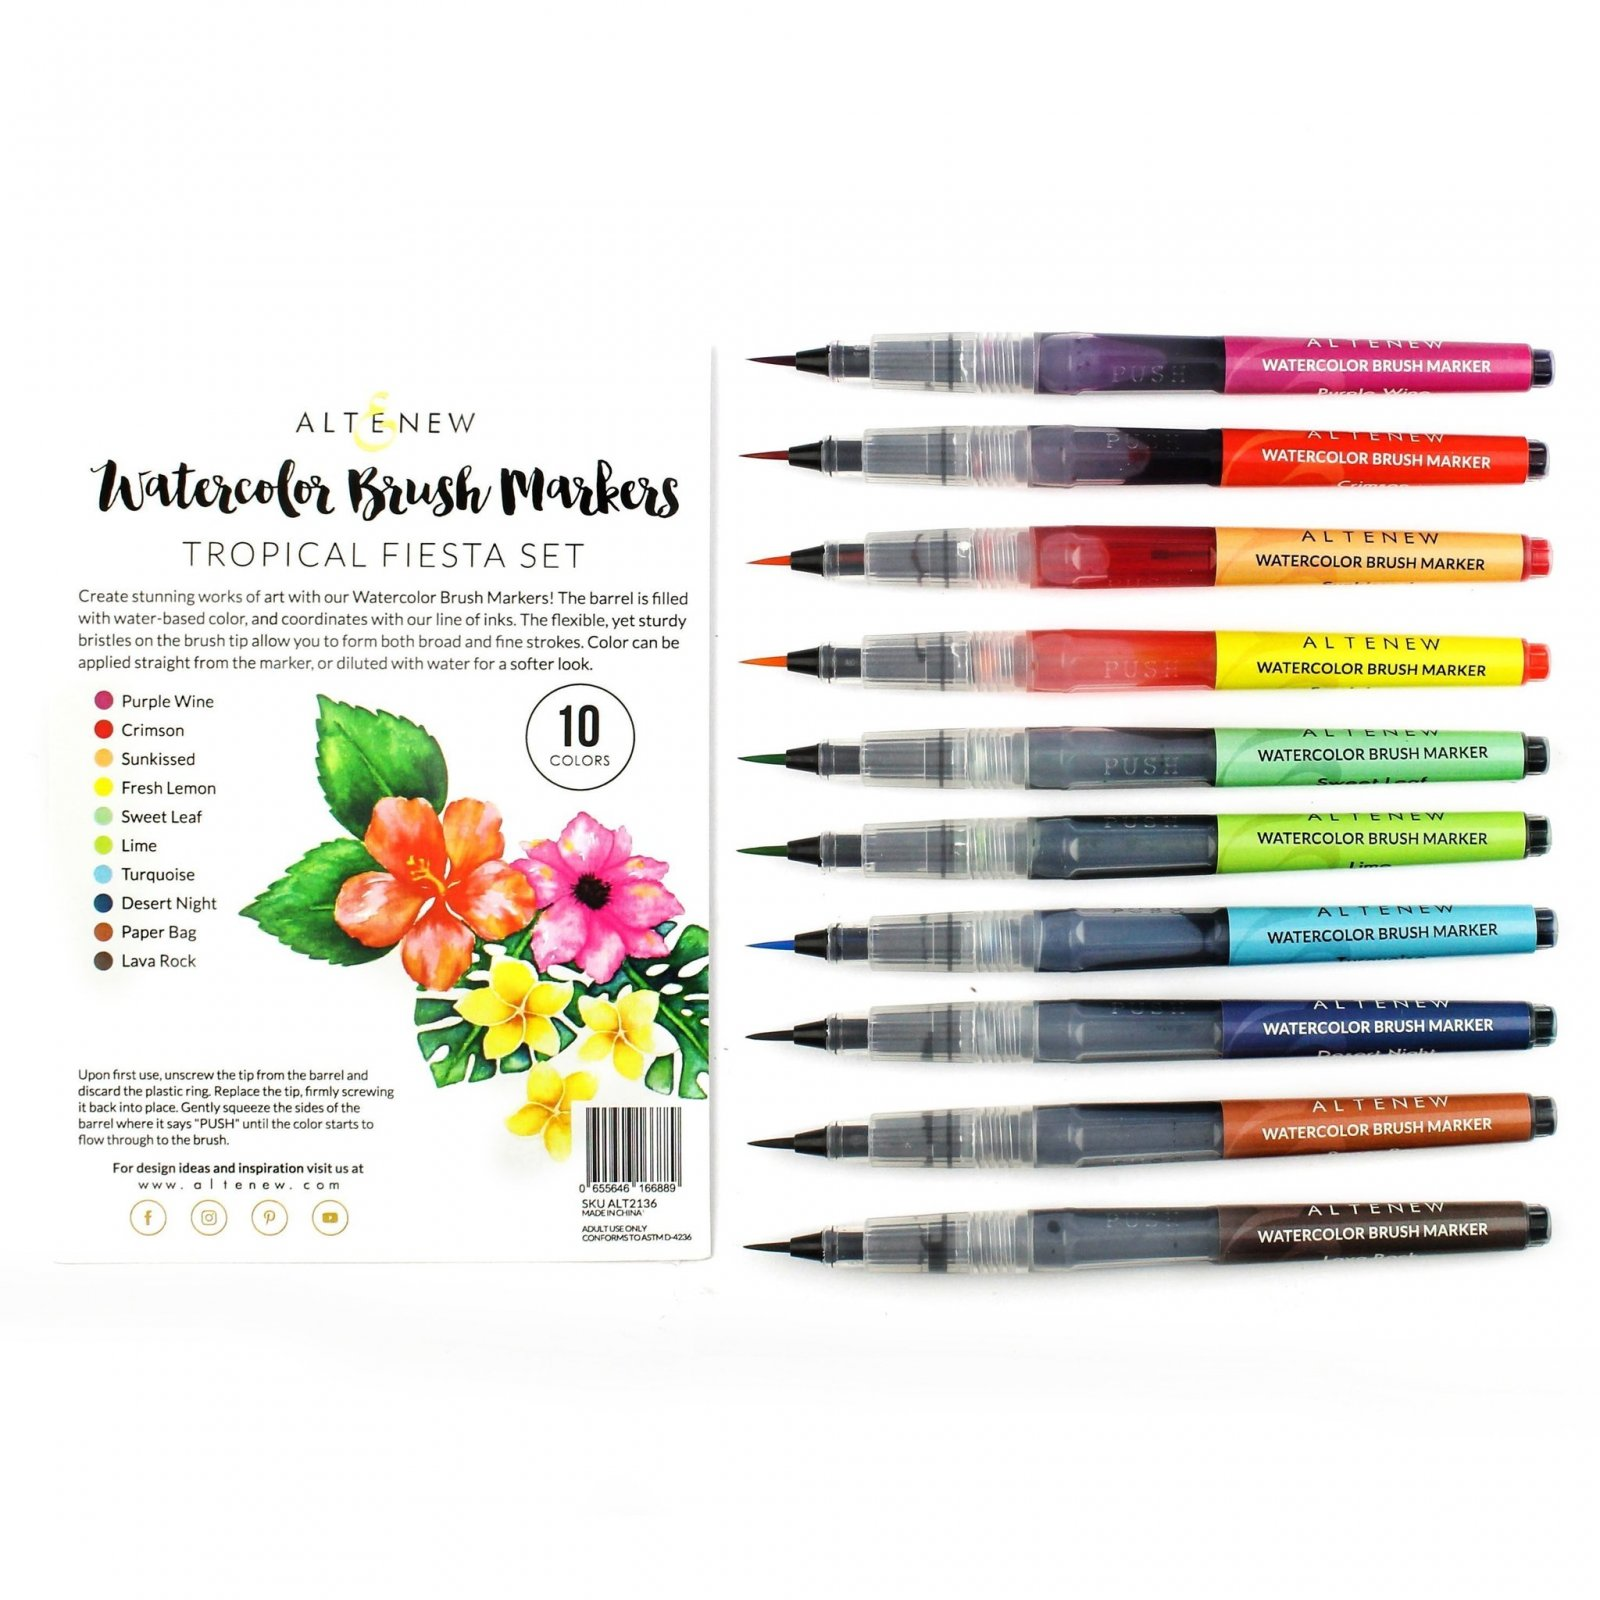 WATERCOLOR TROPICAL FIESTA SET